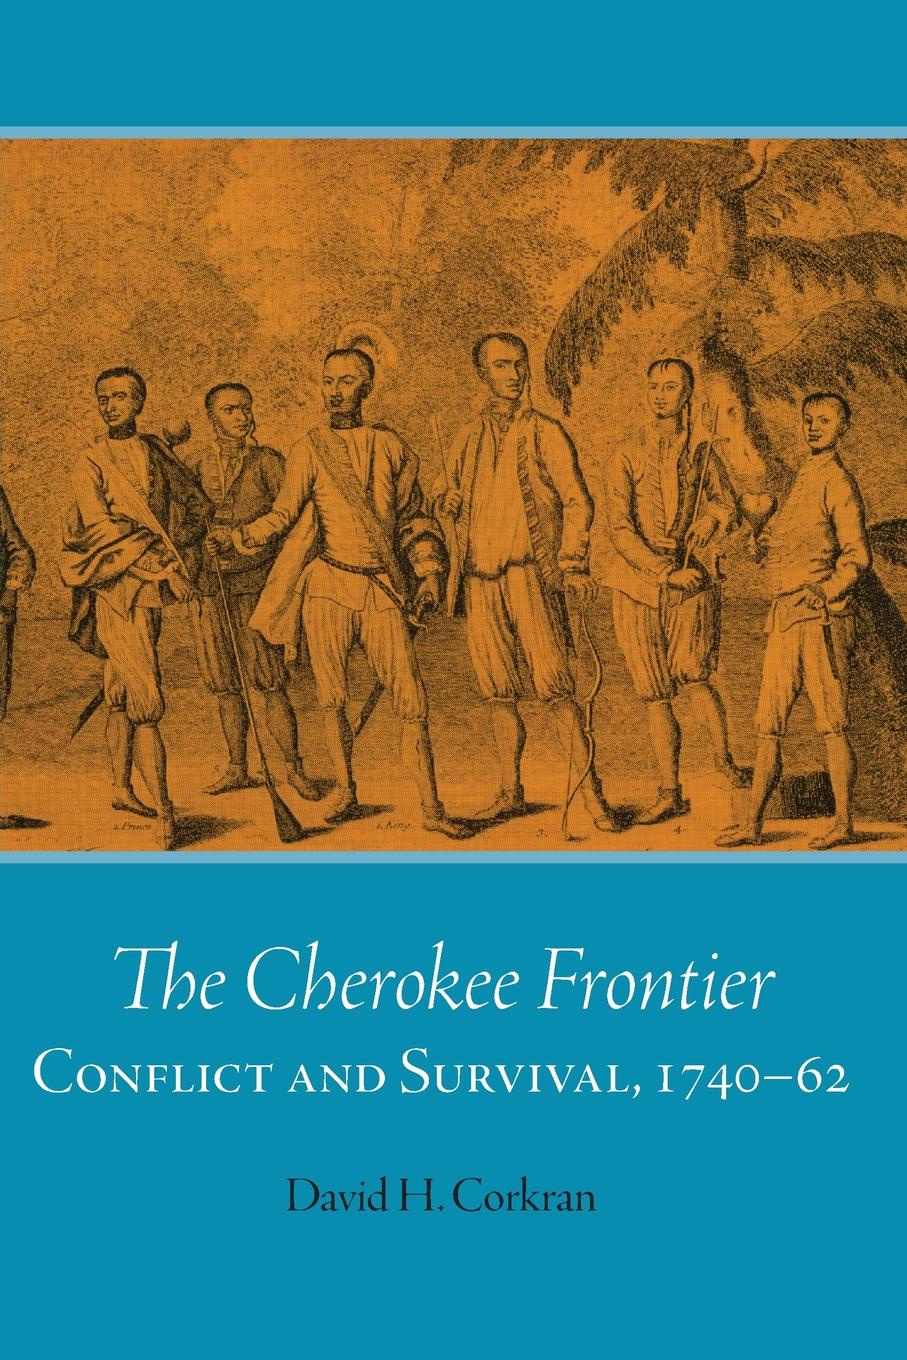 David H. Corkran The Cherokee Frontier. Conflict and Survival, 1740-62